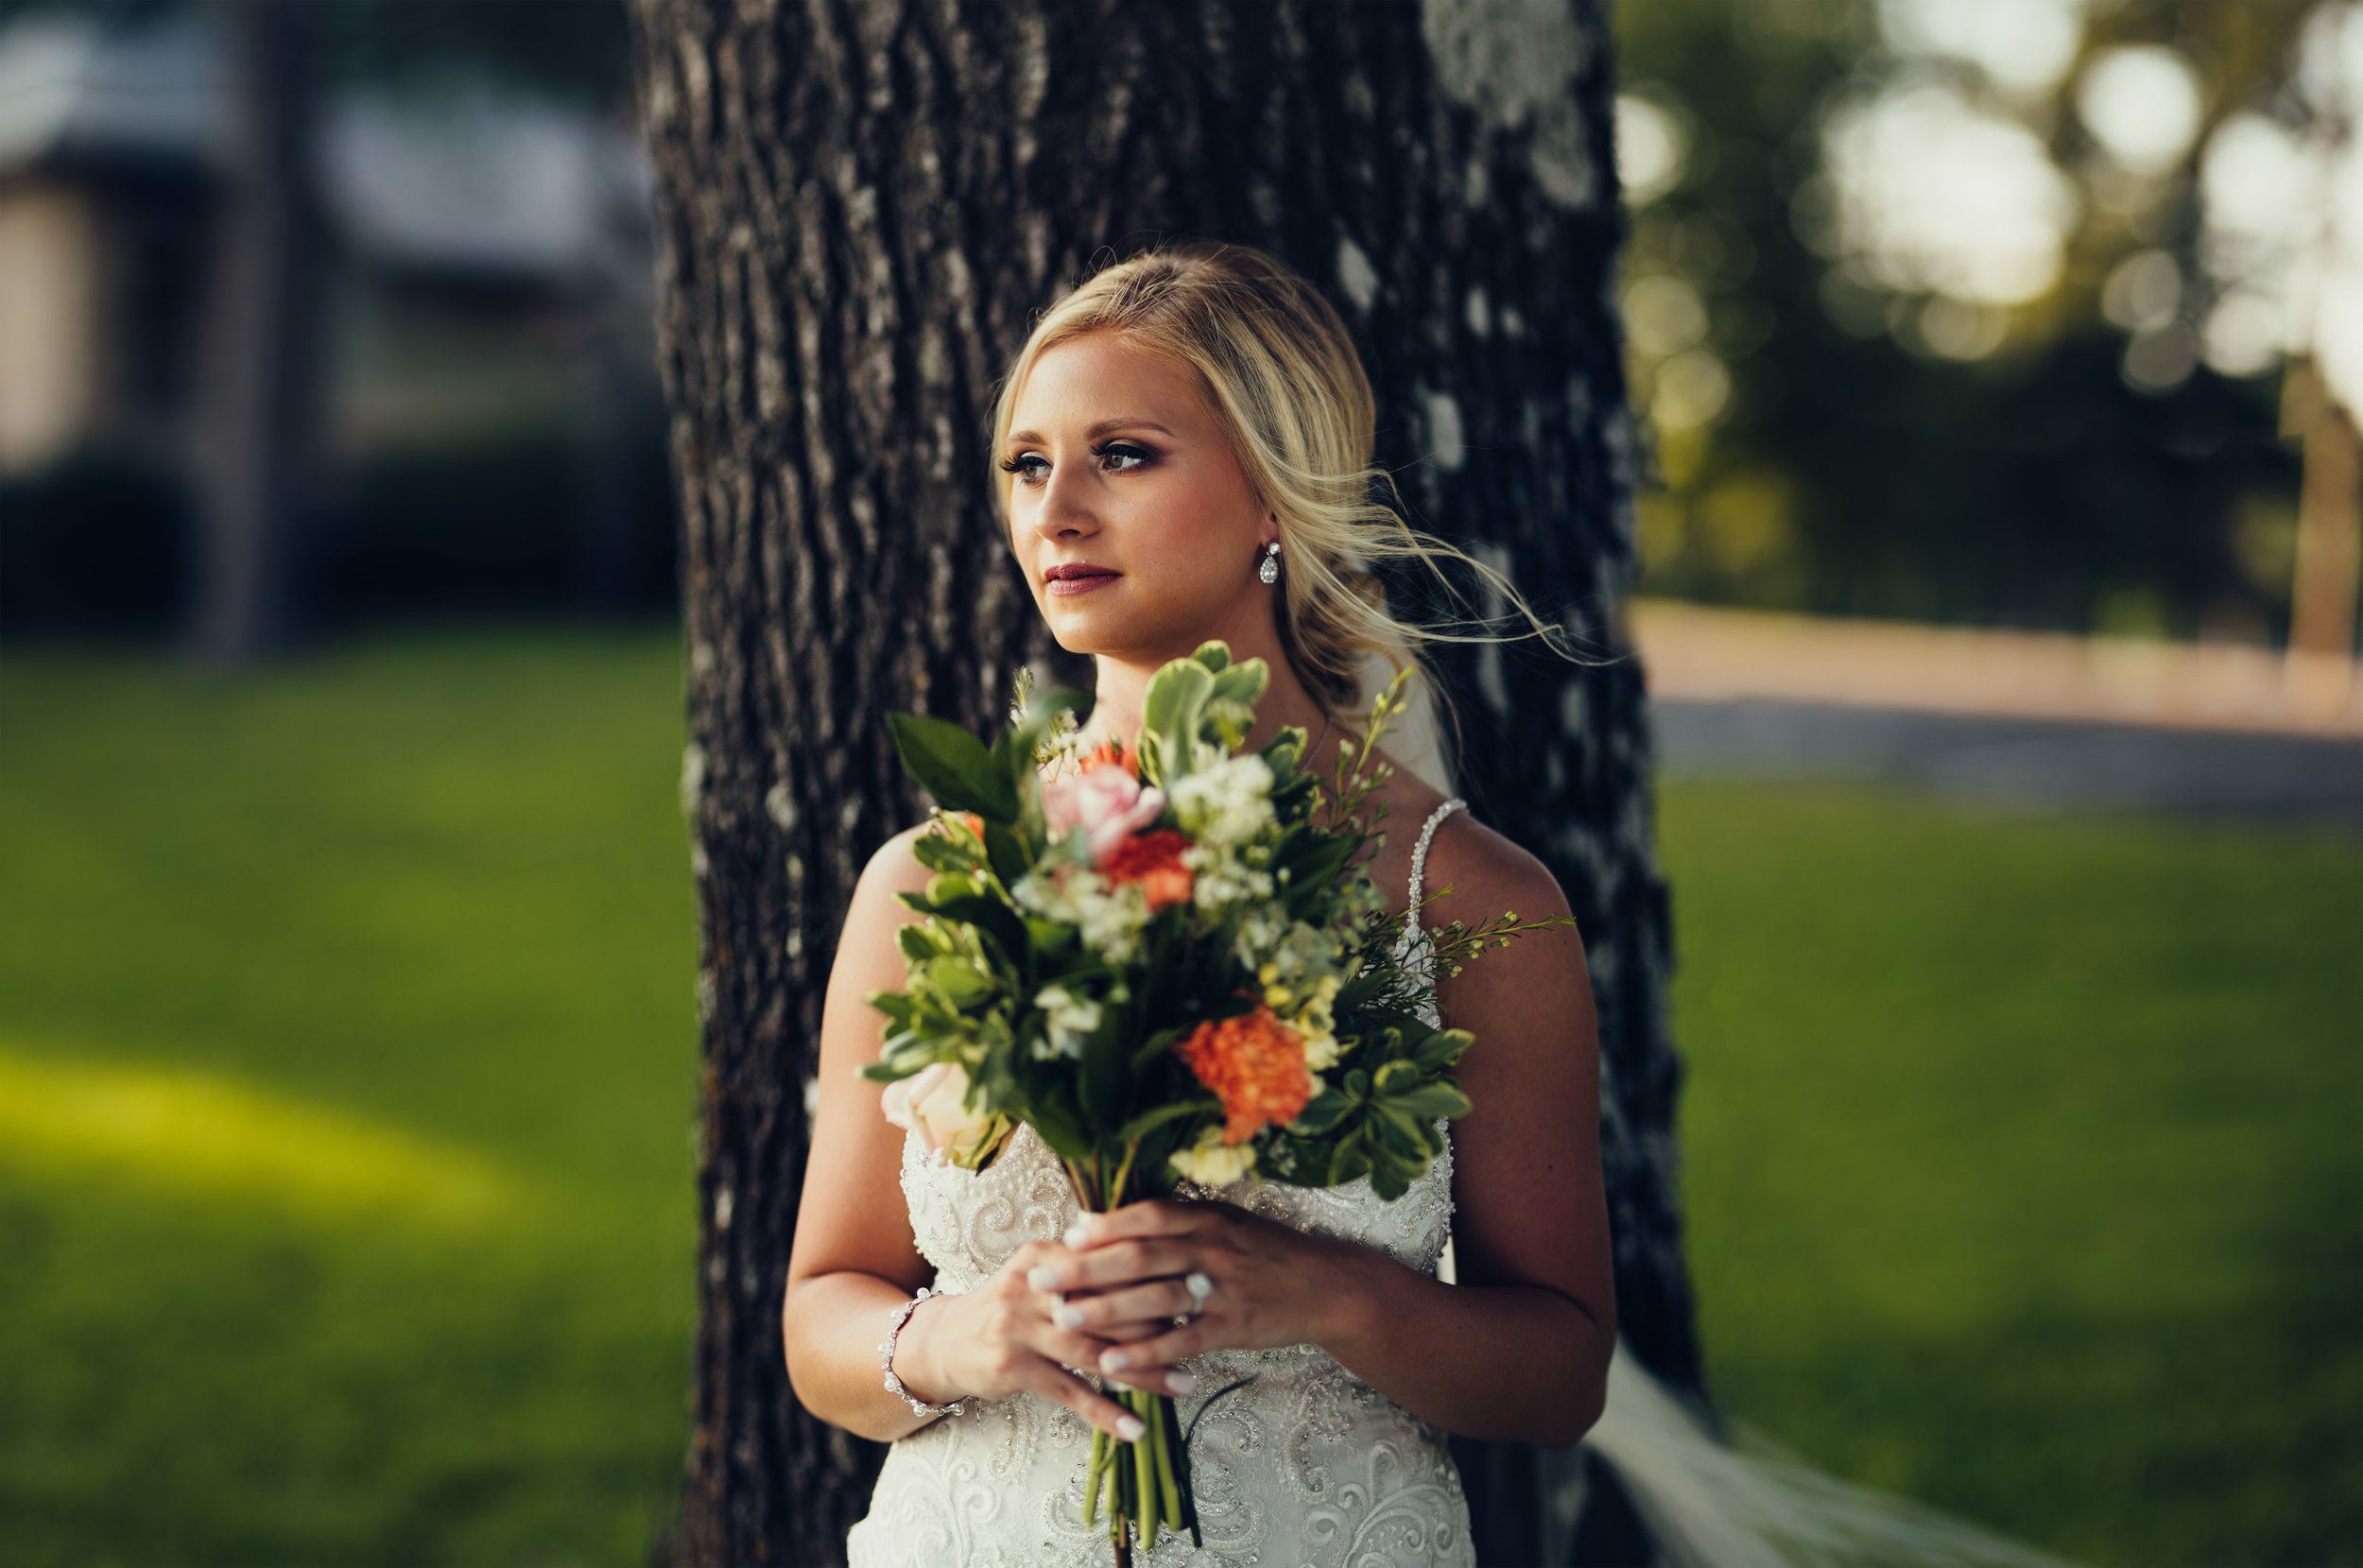 Amber Bridal Photography